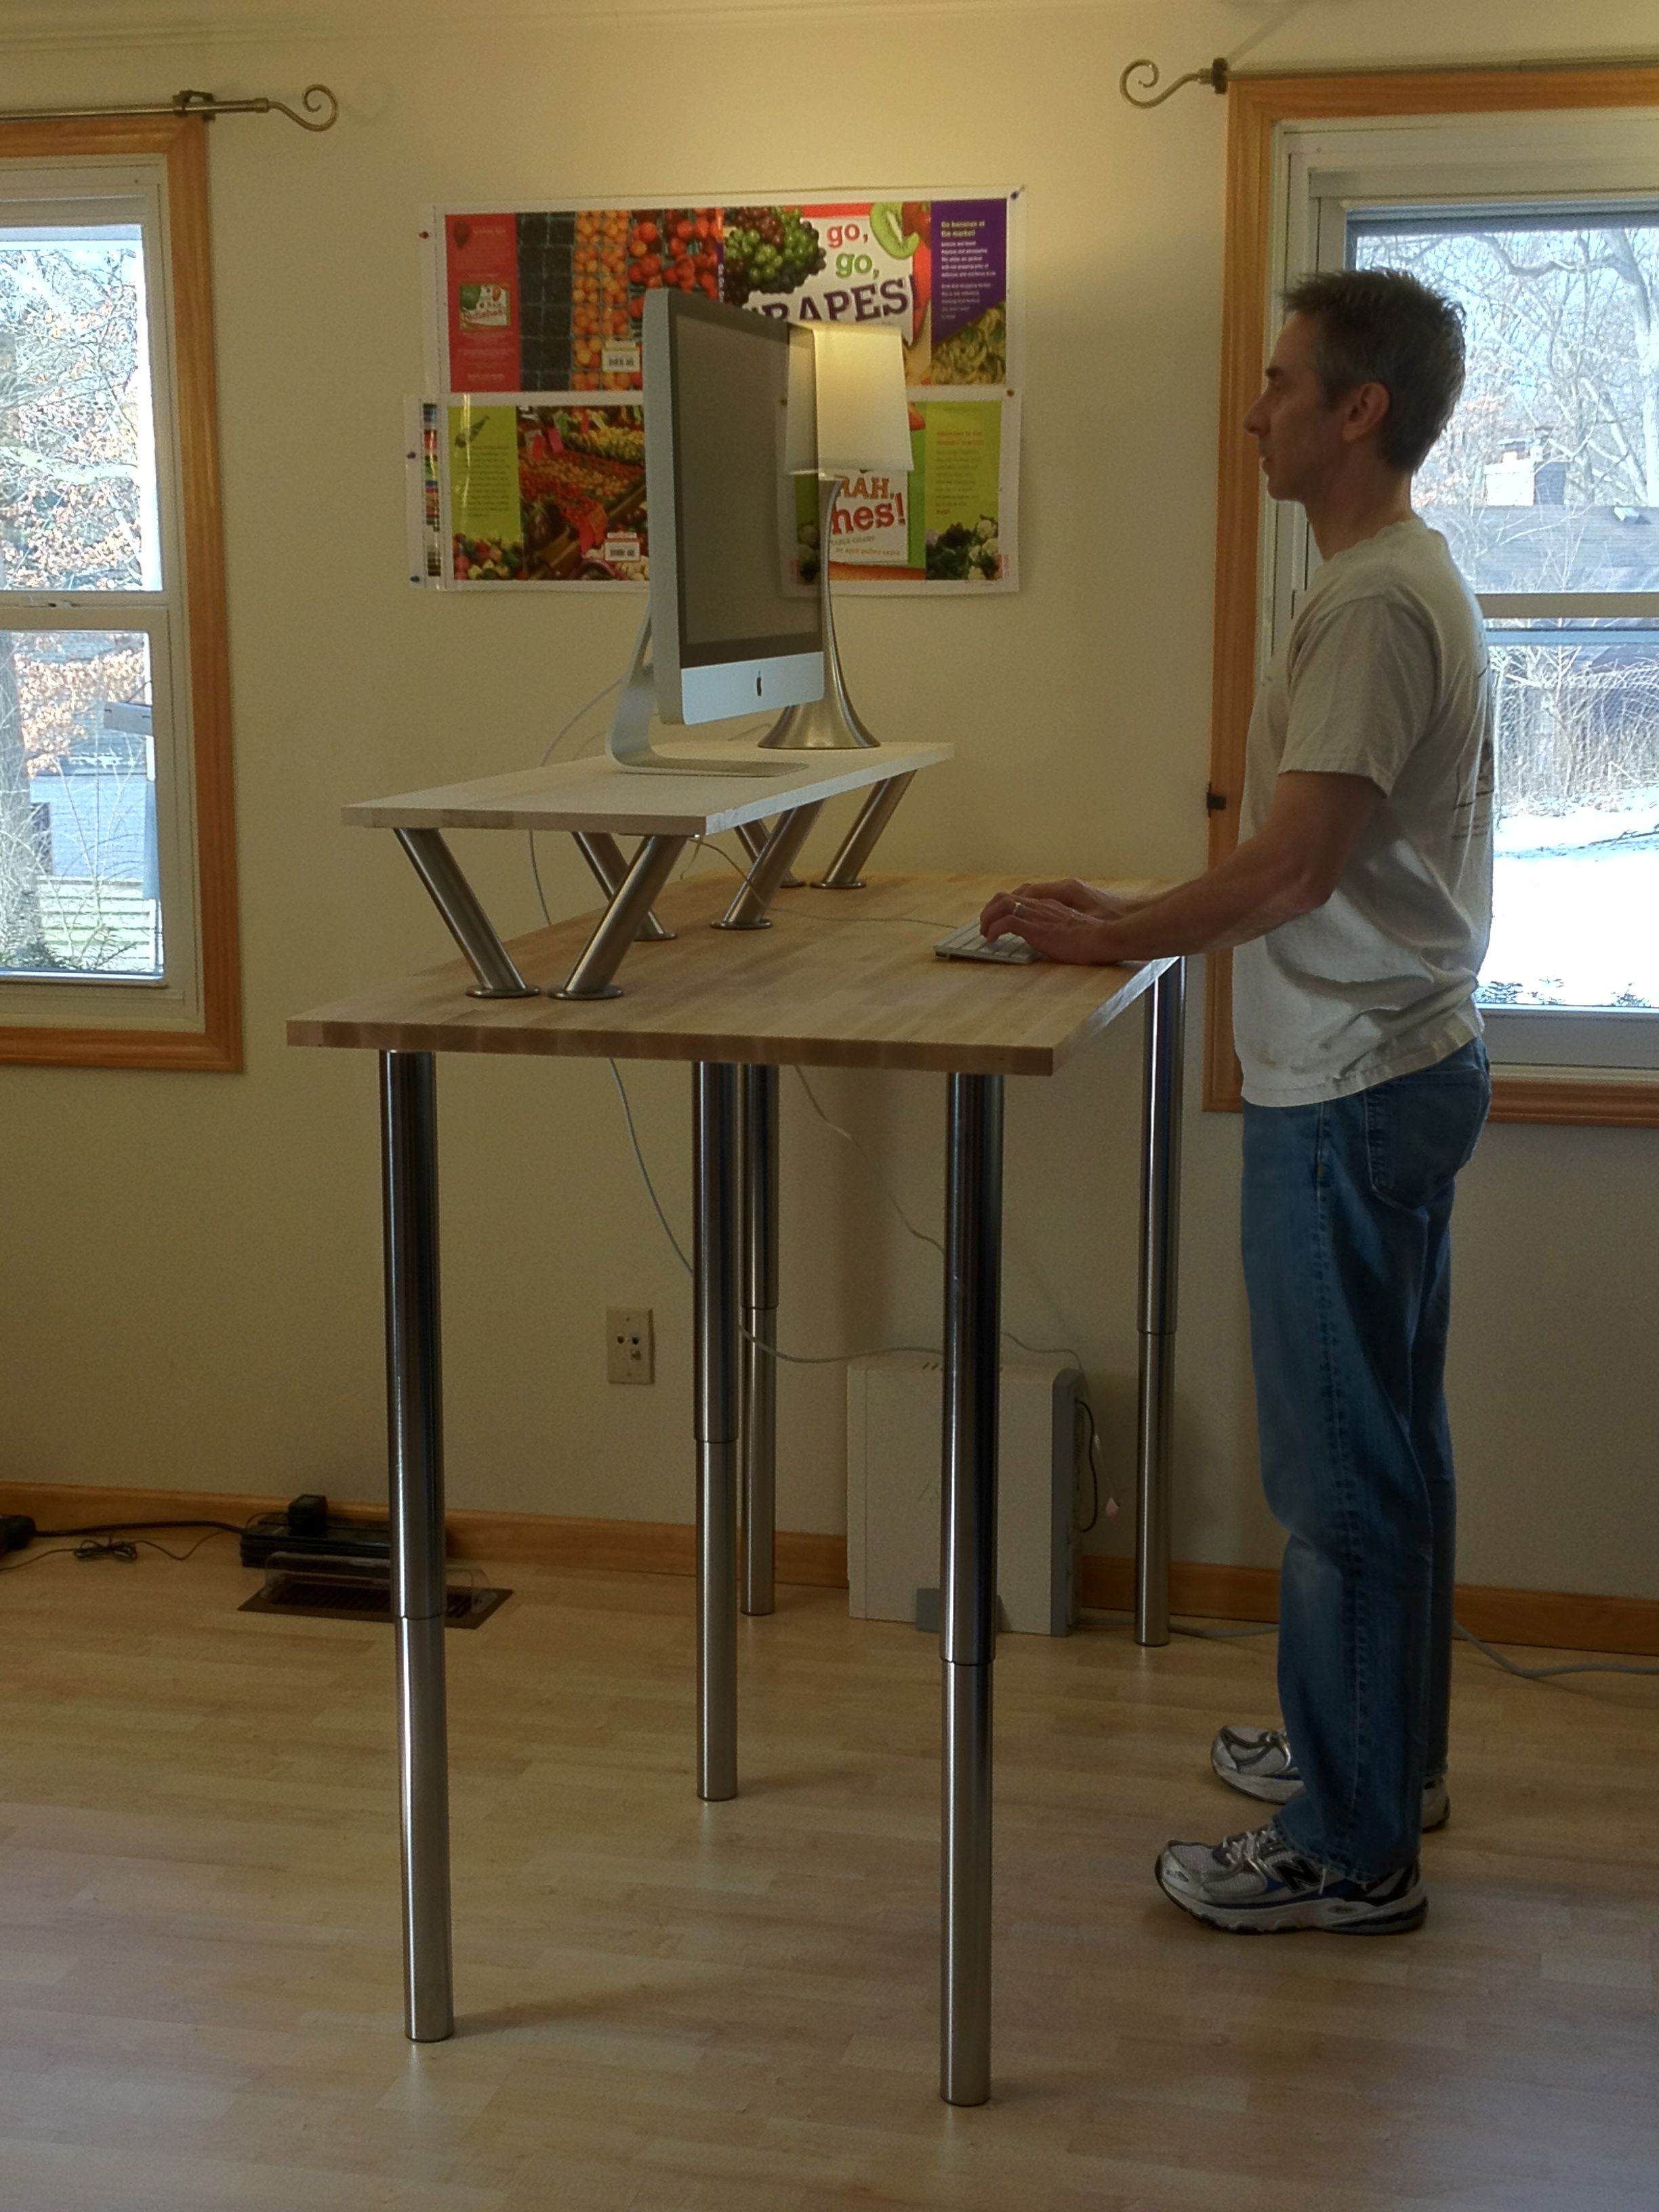 Diy ikea standing desk - Beautiful Nontoxic Standing Desk Hacked From Mostly Ikea Parts By Jeff Sayre Ikea Hack Ideas For Studio Office Pinterest Desks And Monitor